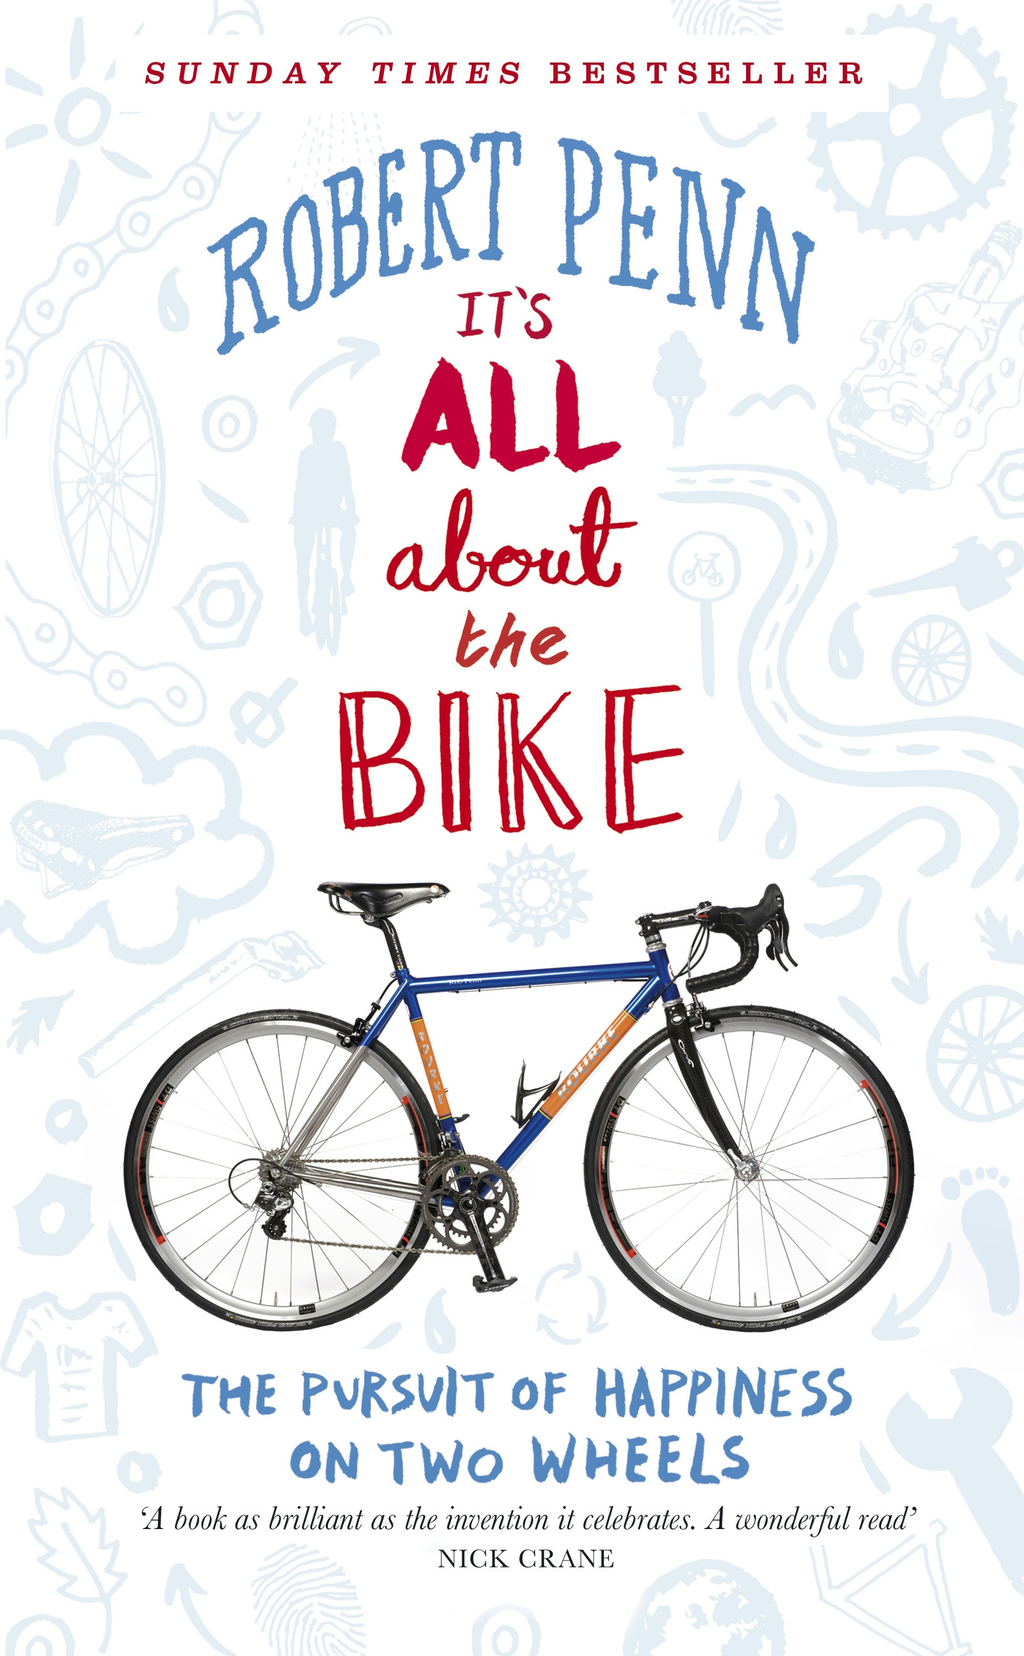 It's All About the Bike: The Pursuit of Happiness On Two Wheels The Pursuit of Happiness On Two Wheels